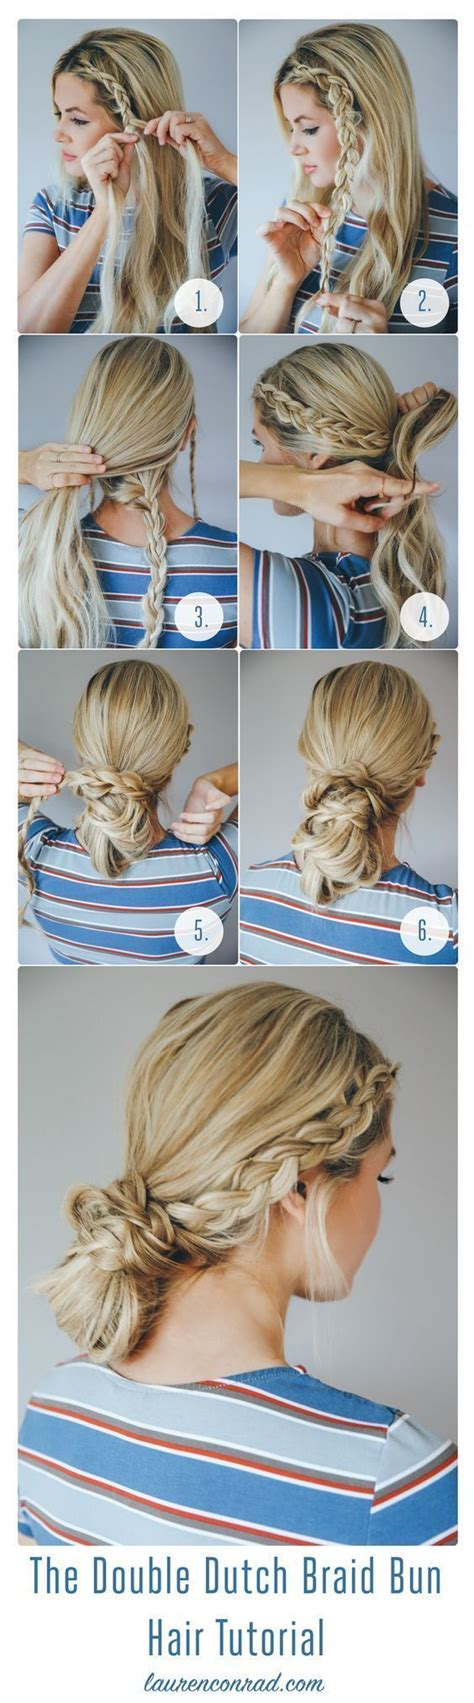 superhero hairstyles 25 best ideas about gym hairstyles on pinterest workout